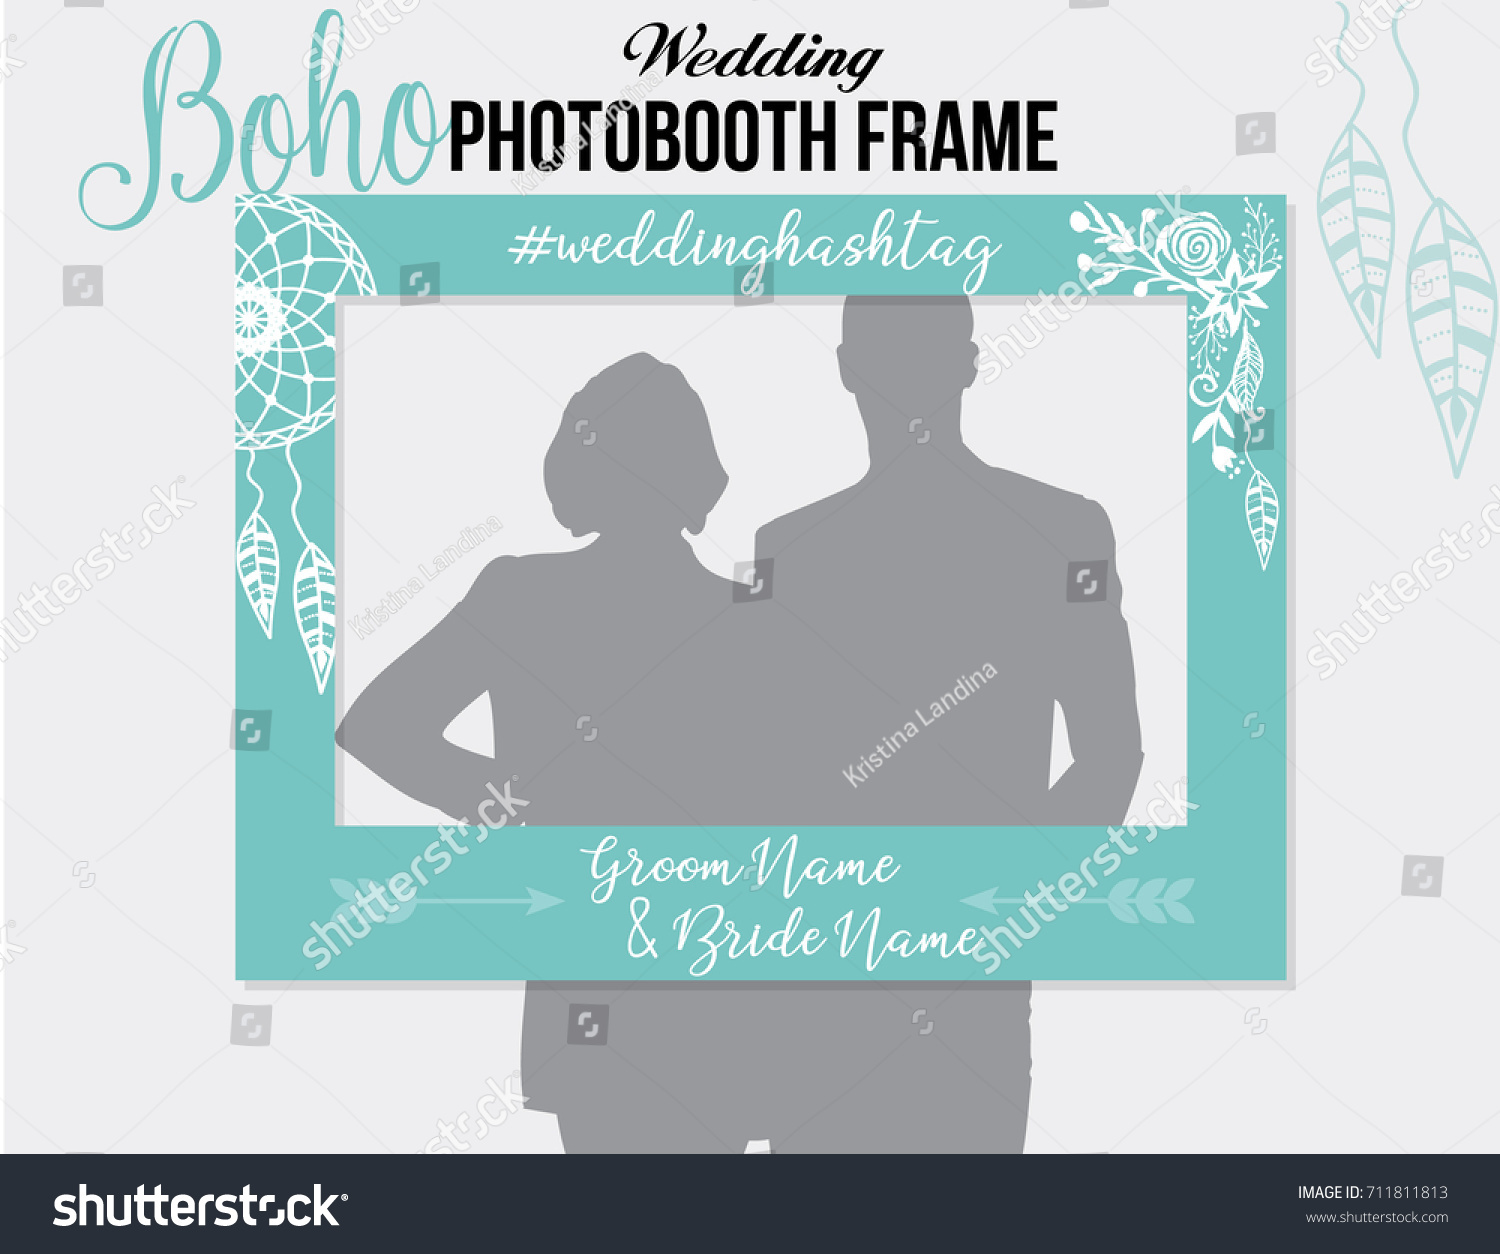 Boho Style Photobooth Wedding Frame Hashtag Stock Vector Royalty